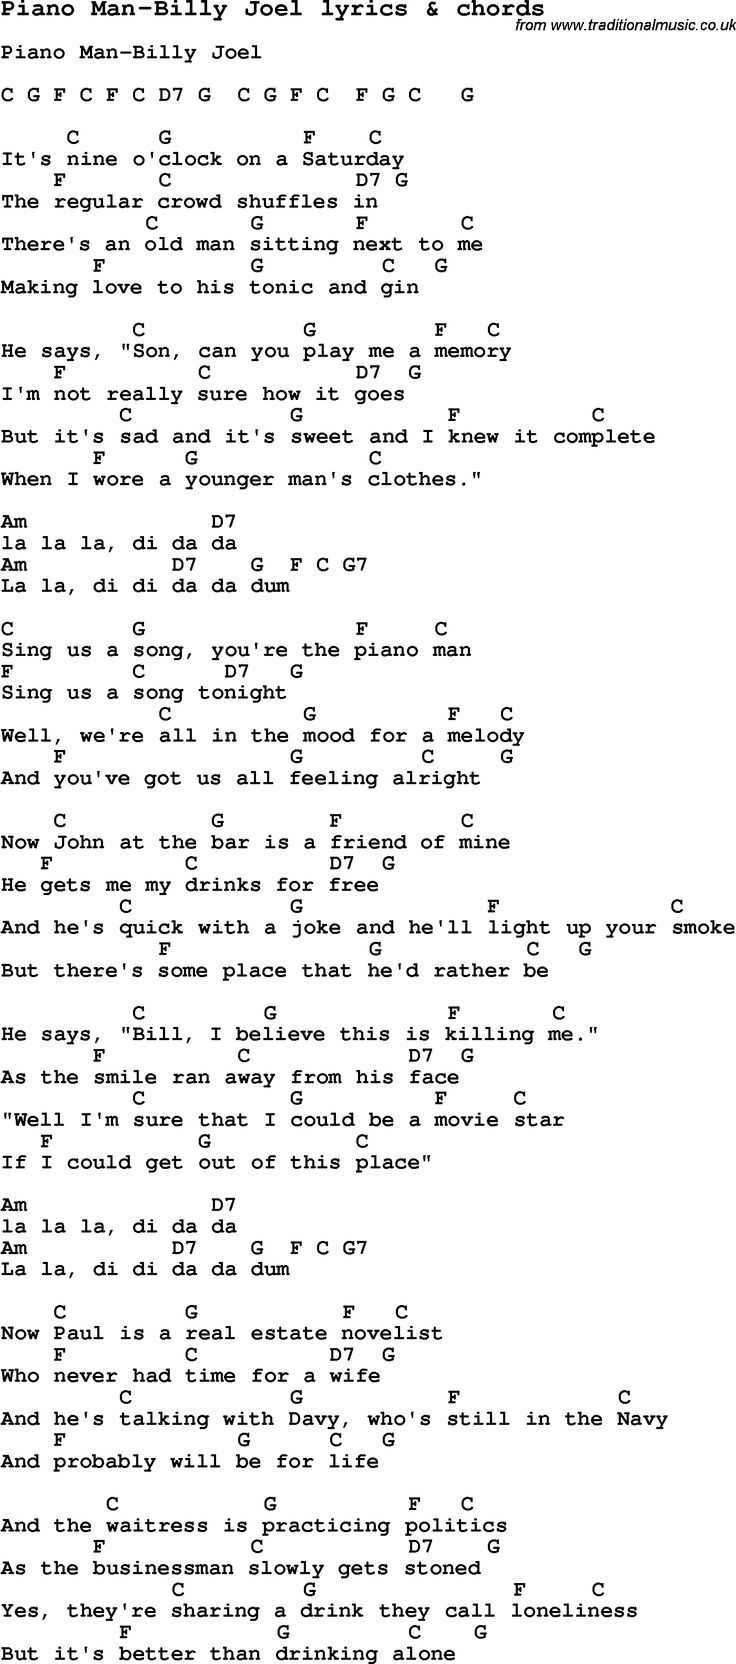 Love song lyrics for piano man billy joel with chords for ukulele love song lyrics for piano man billy joel with chords for ukulele guitar hexwebz Choice Image